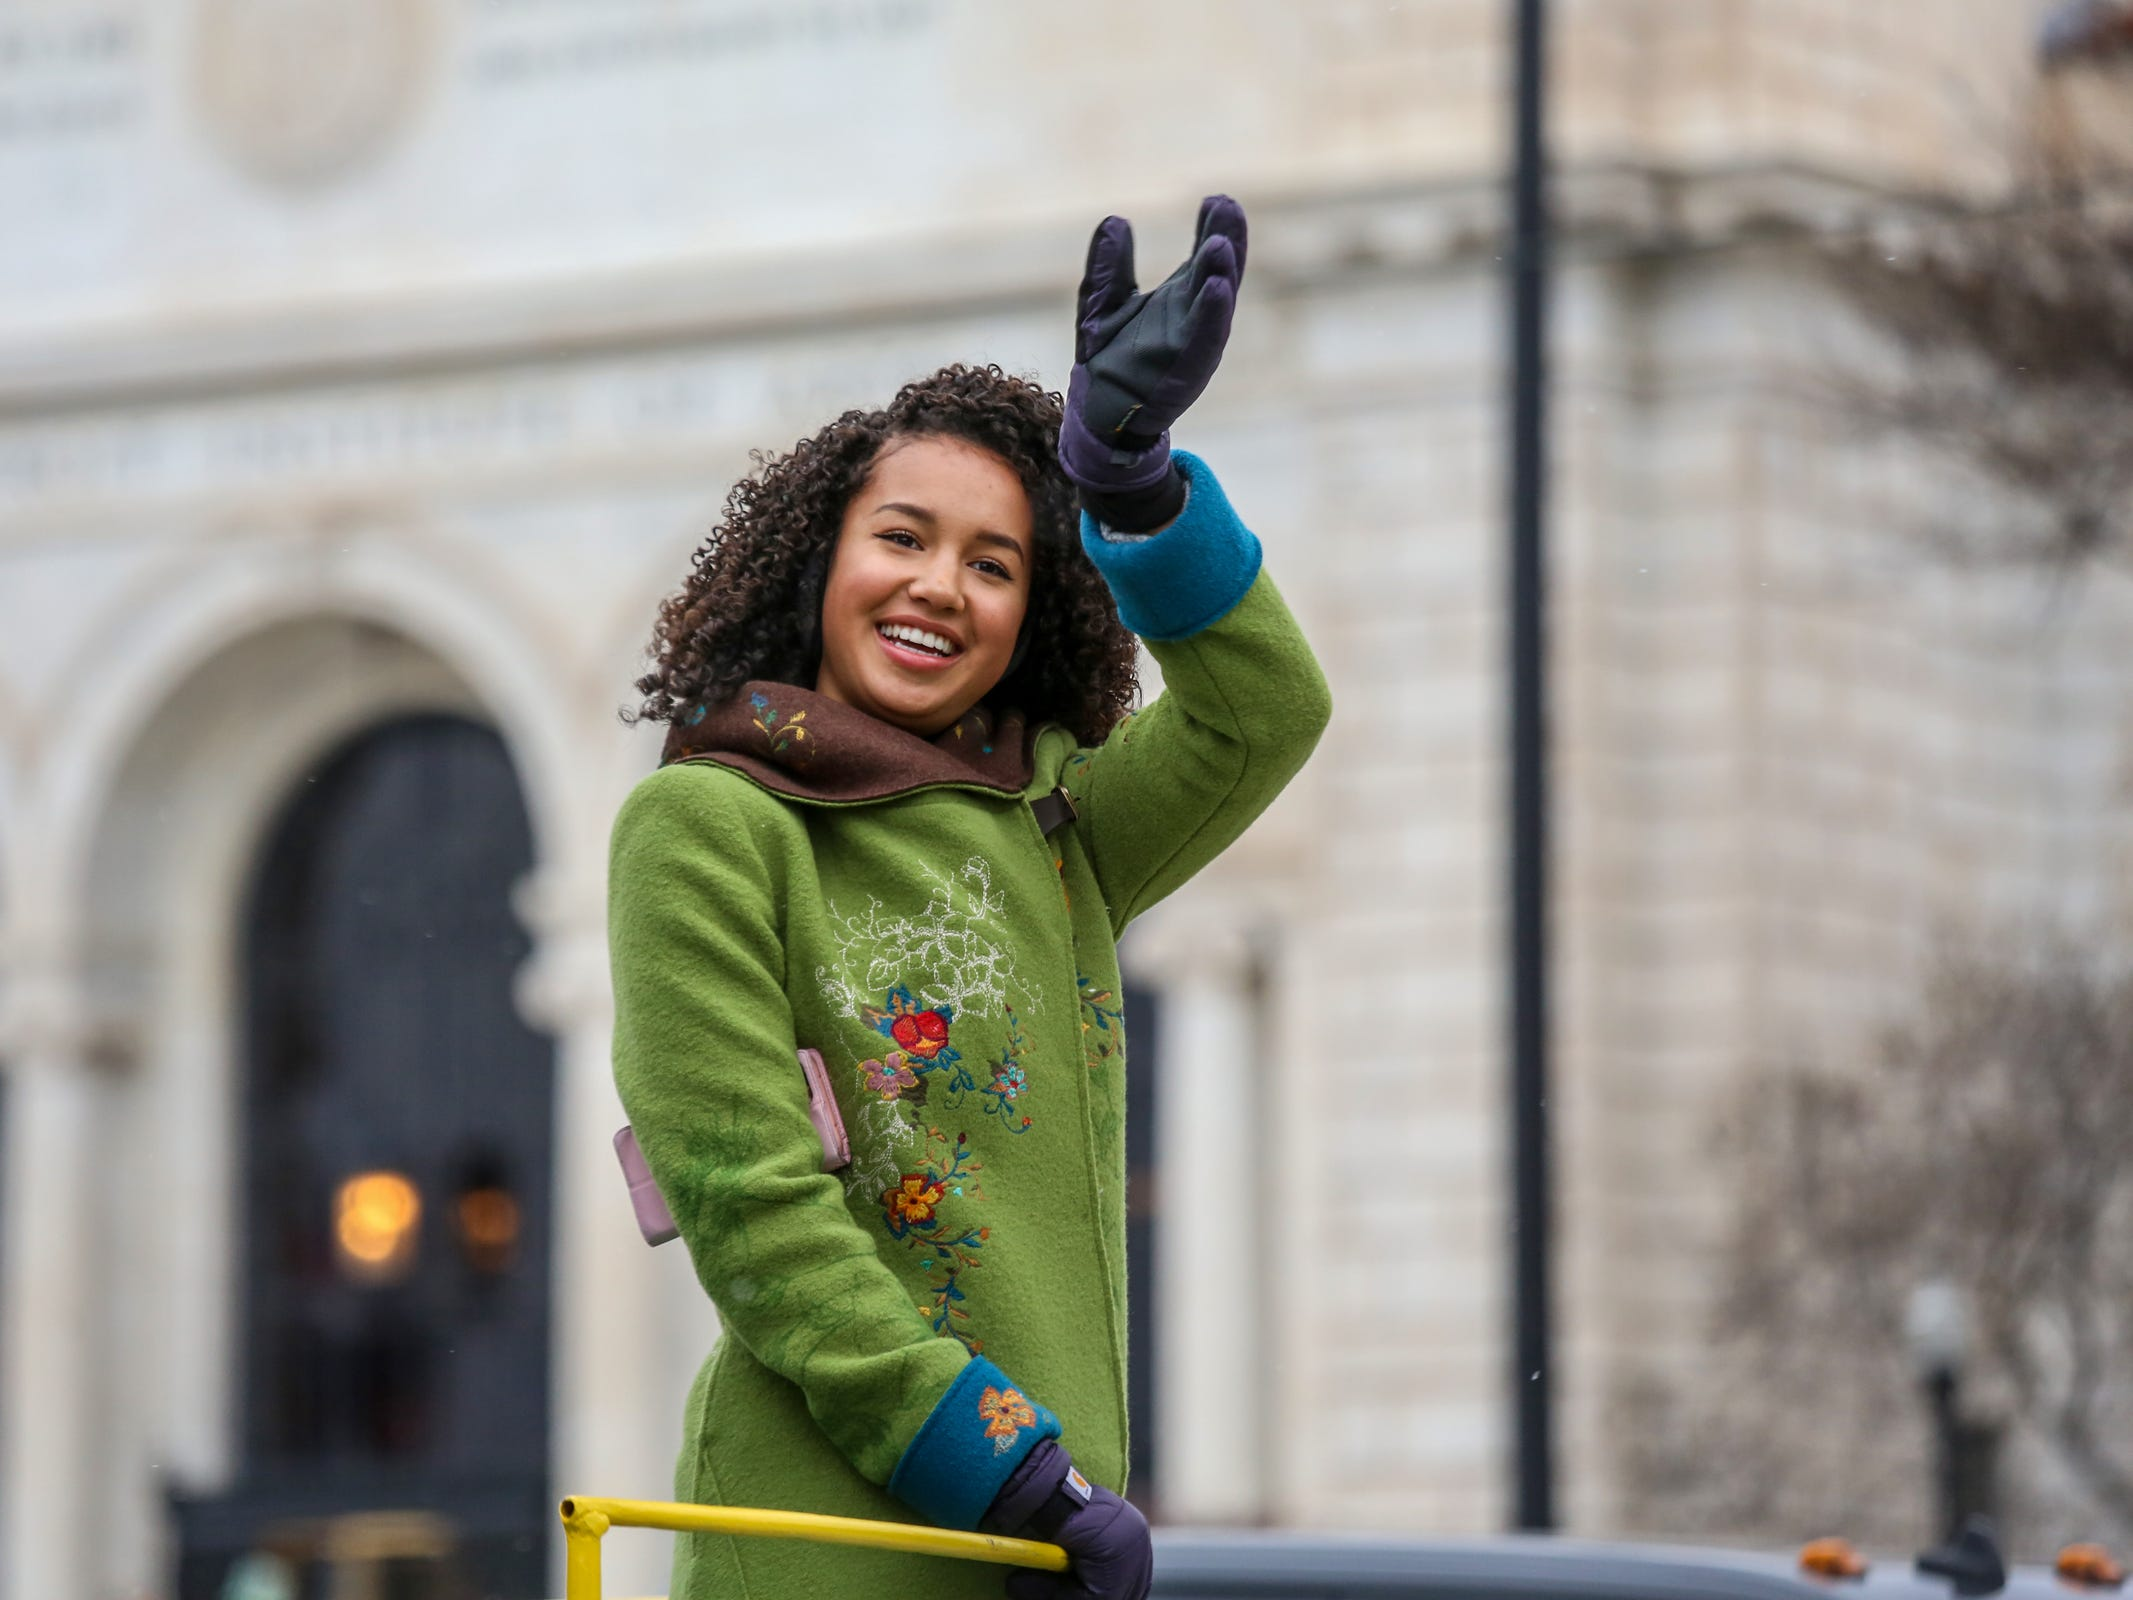 Disney Channel's Sofia Wylie waves to the crowd, during America's Thanksgiving Parade in Detroit on Thursday, Nov. 22, 2018.